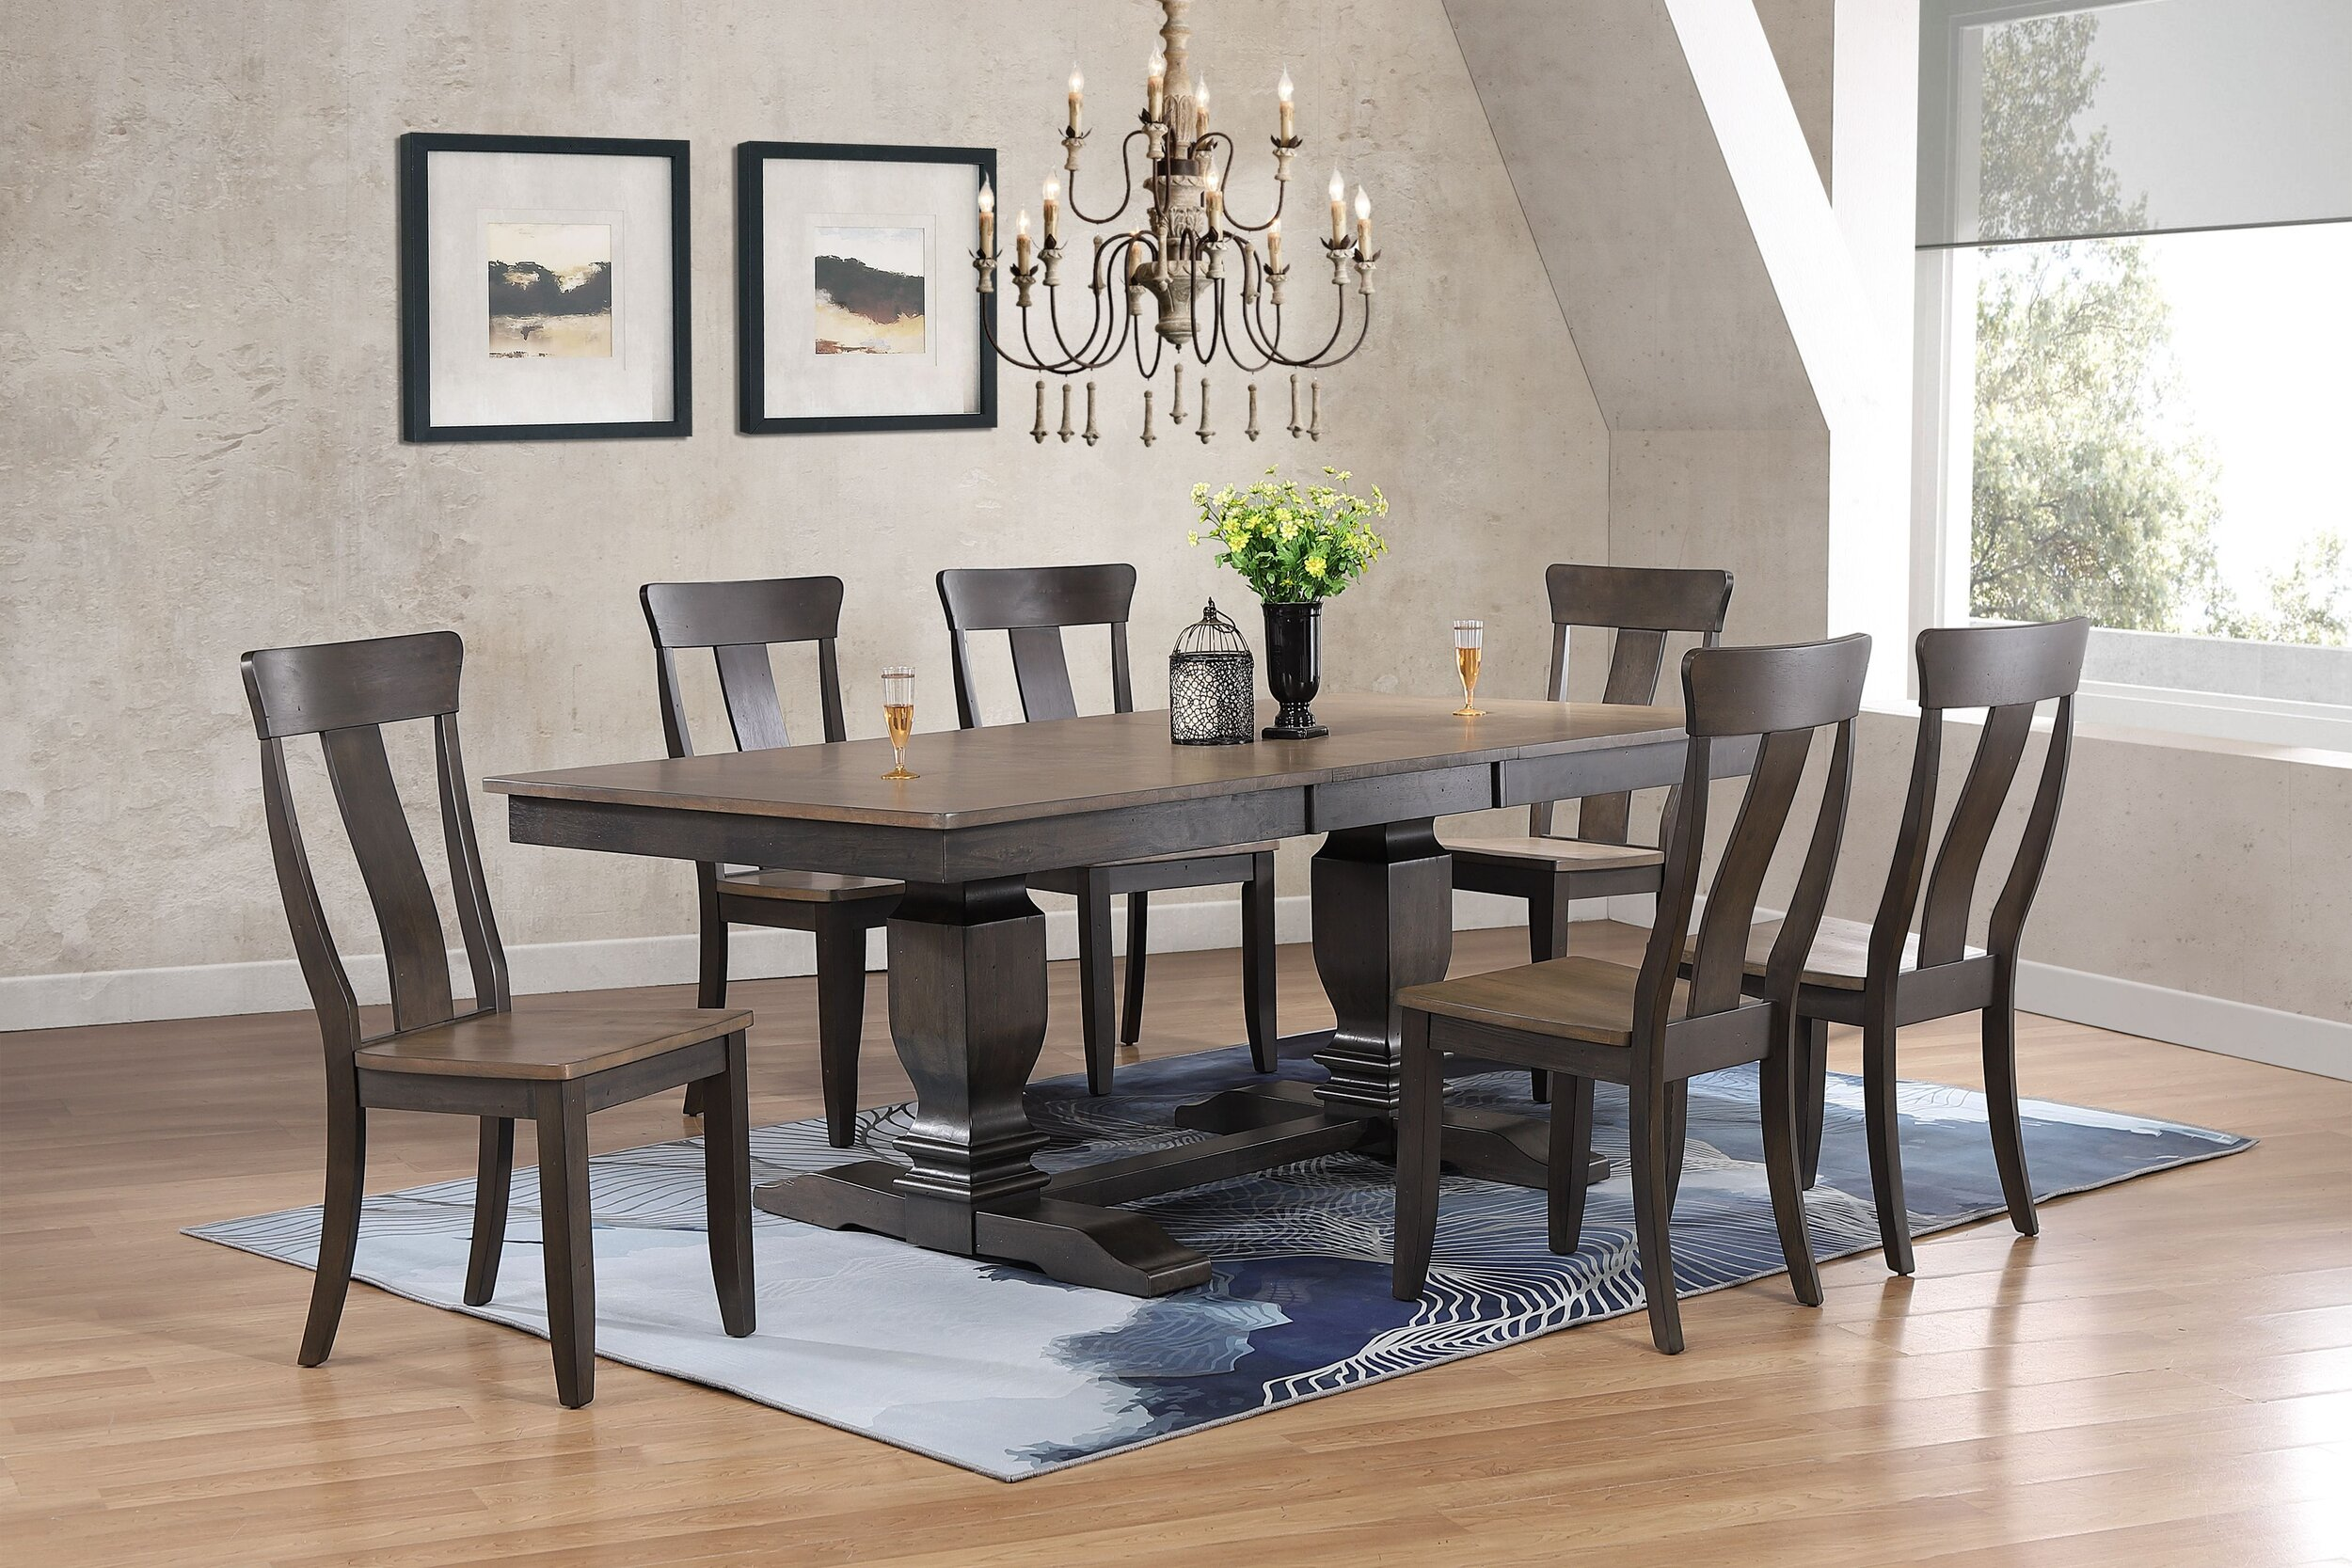 """42""""x64""""x82"""" Double Transitional Pedestal In Antique Grey Stone Black Stone Panel Back 7-Piece Dining Set"""